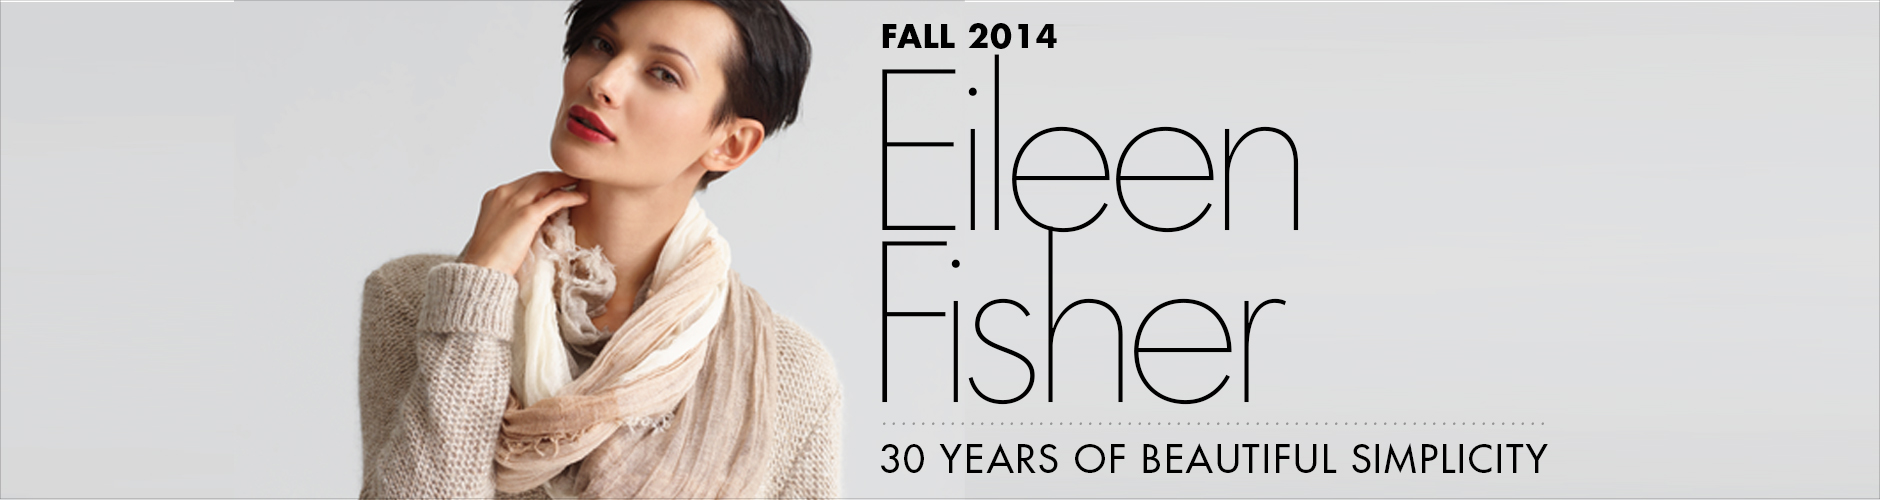 Fall 2014: Eileen Fisher